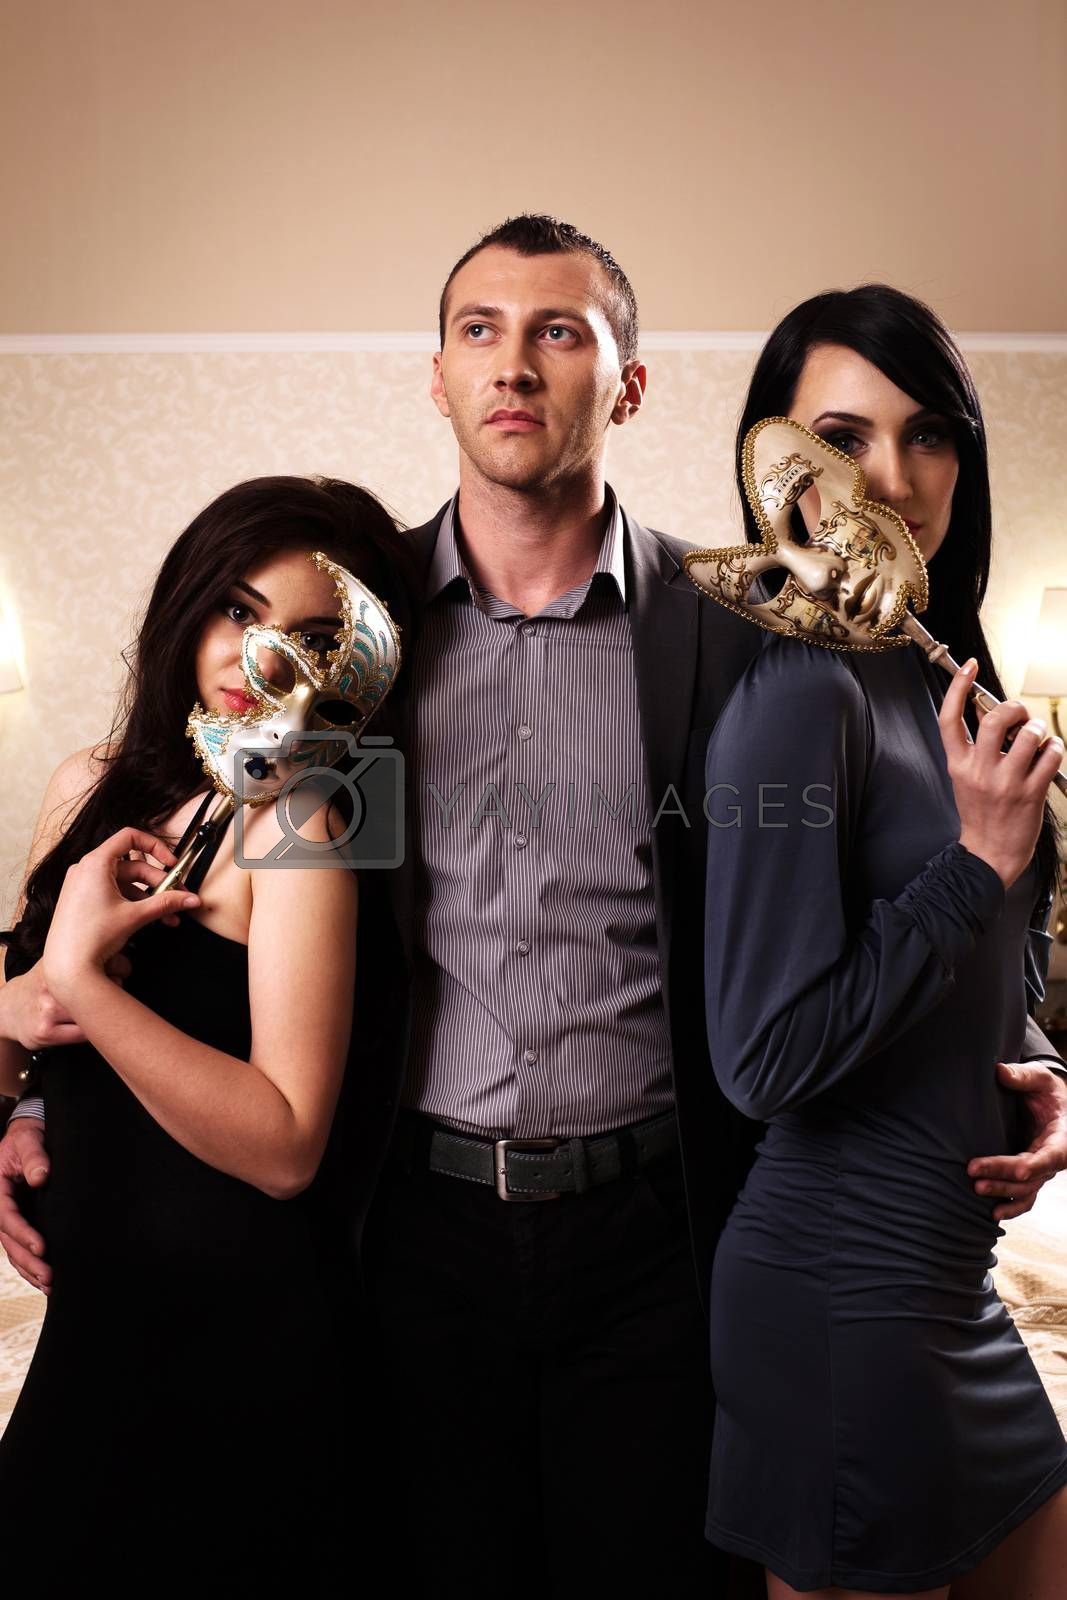 A man with two ladies wearing masks. See more images from the same shoot.